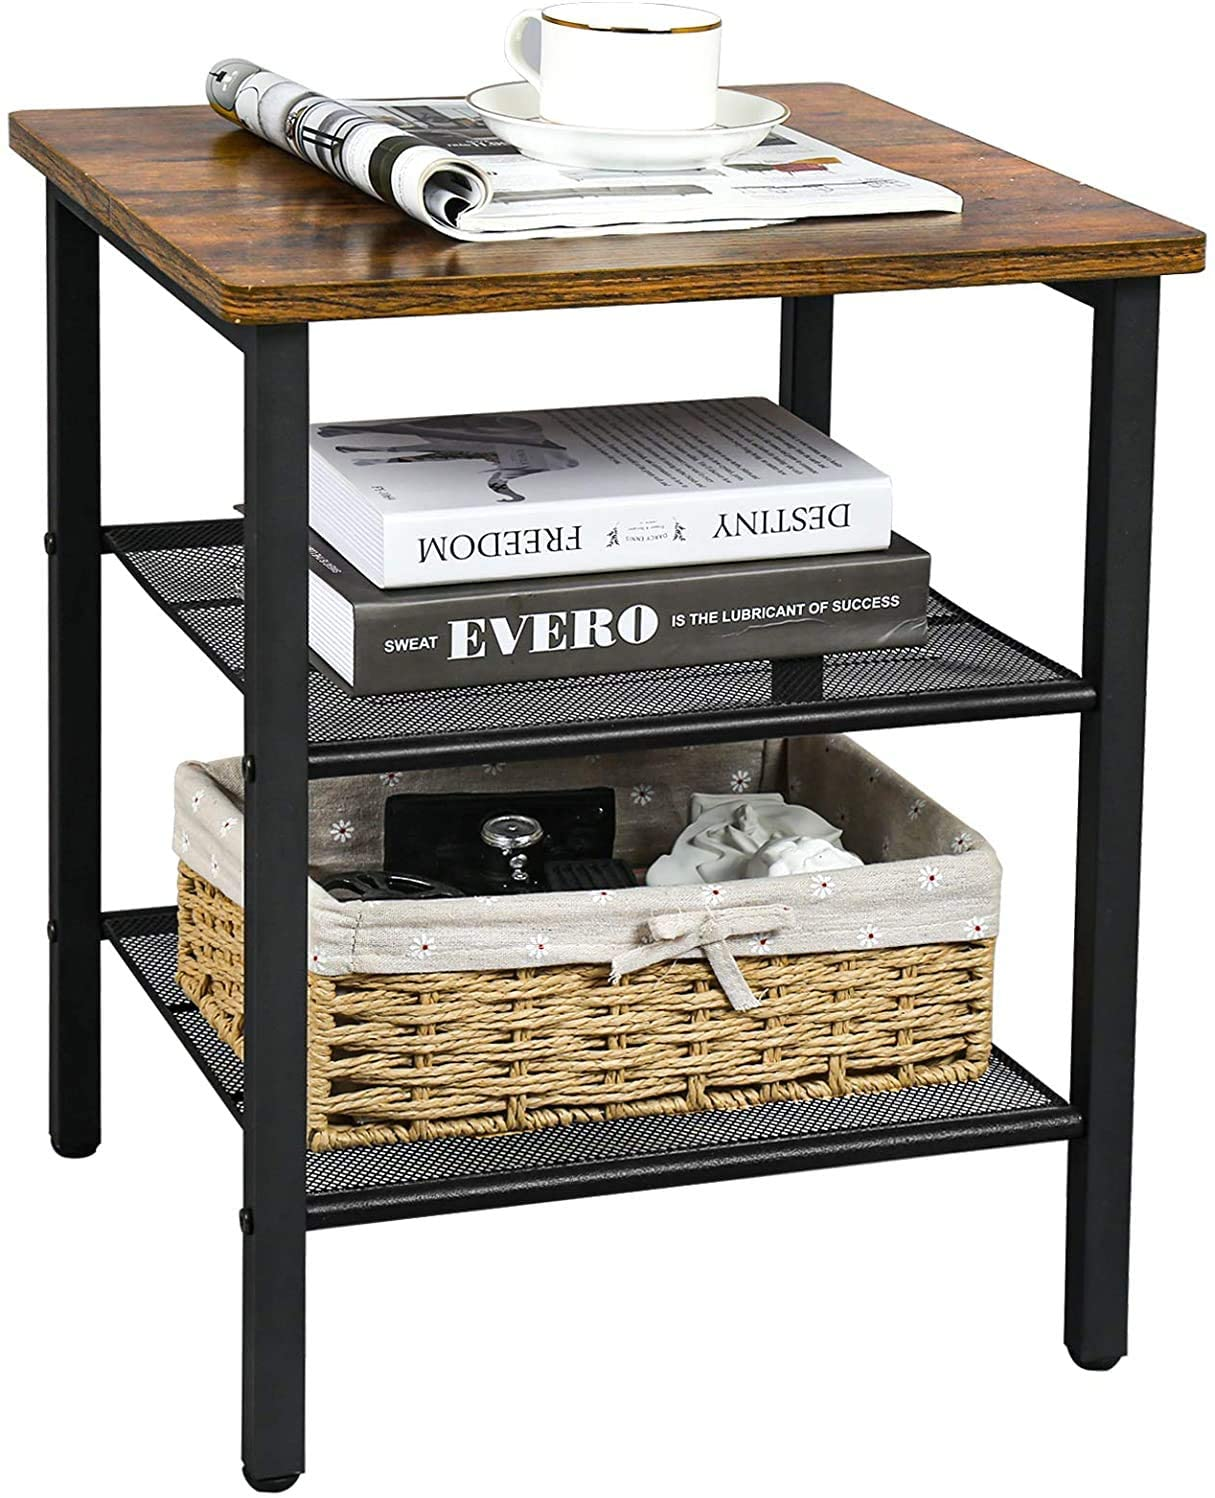 Wood-Steel Nightstand Table with Storage Shelves